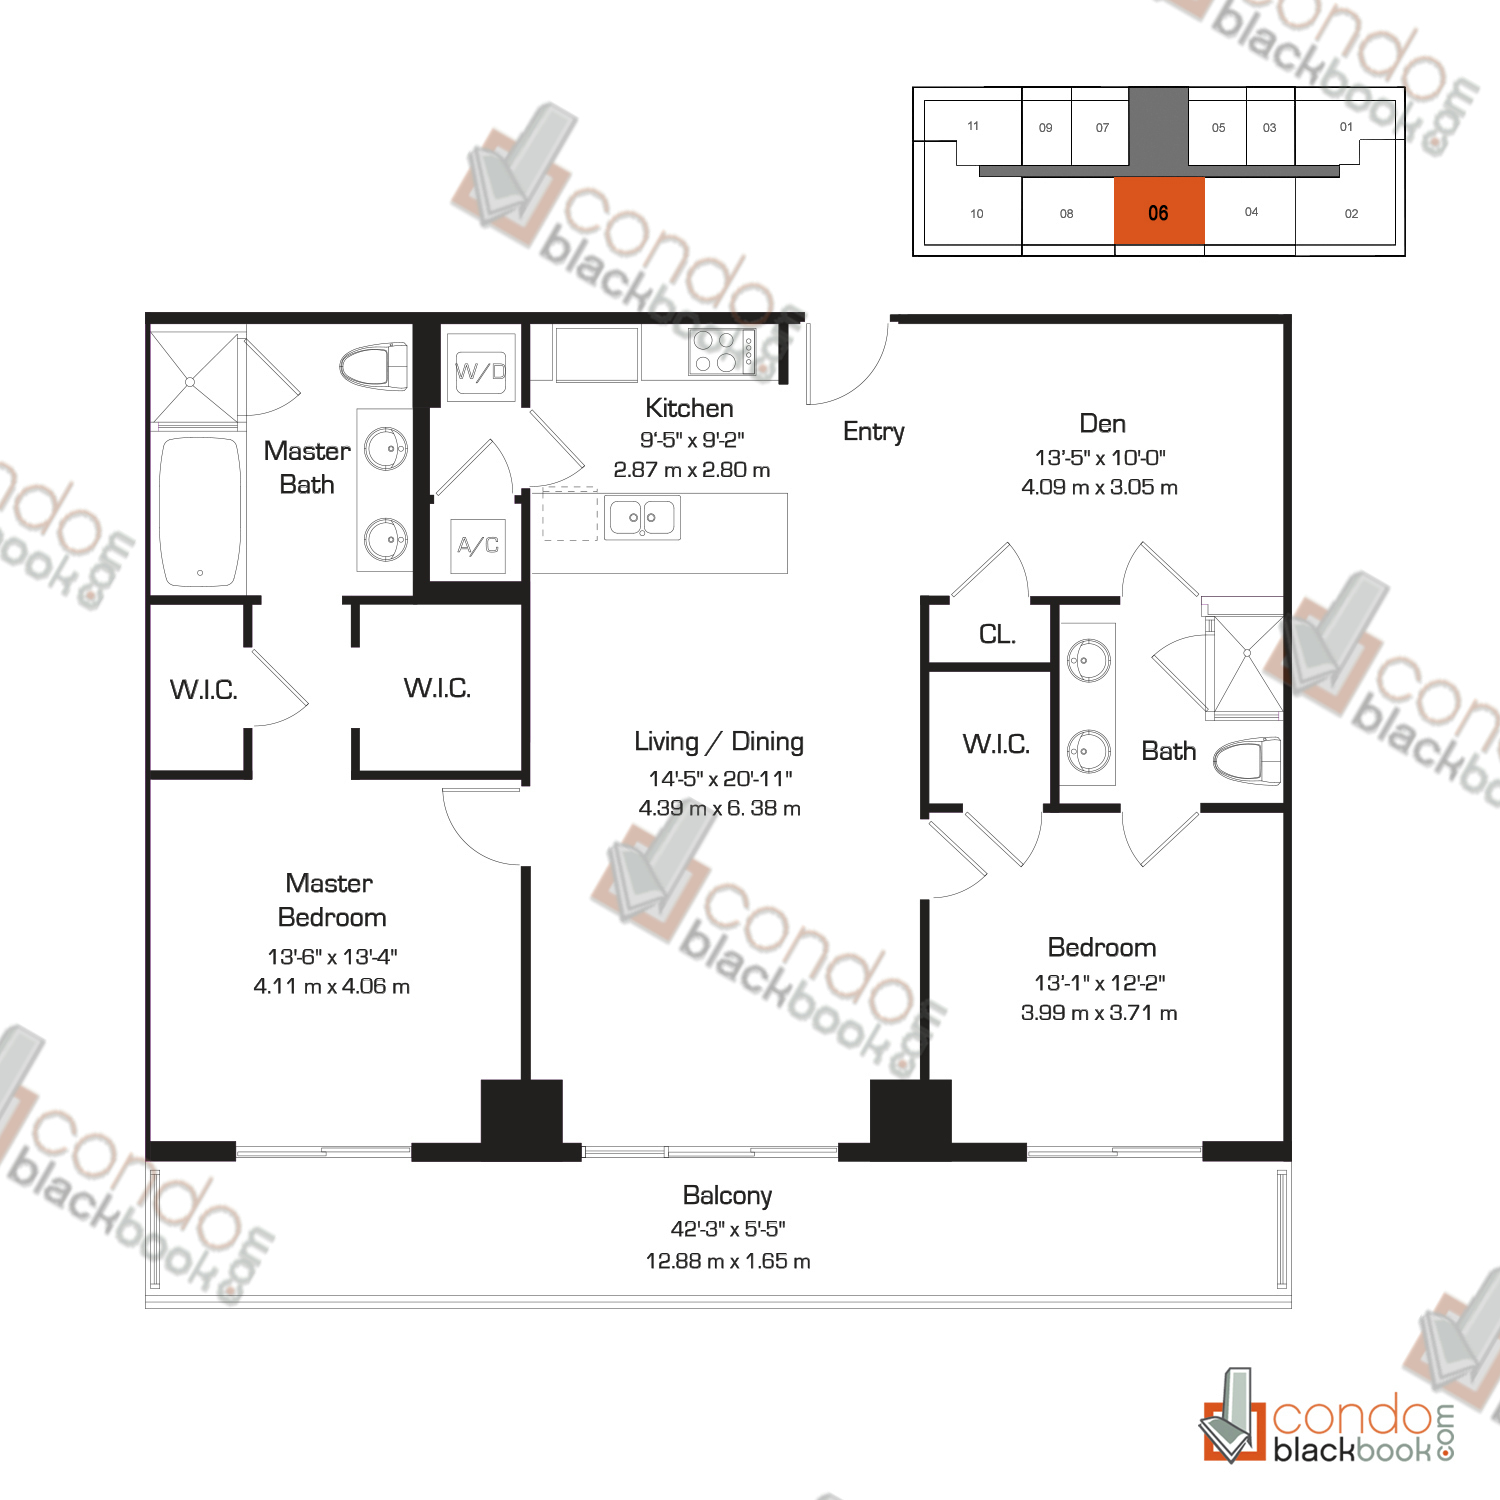 Floor plan for 50 Biscayne Downtown Miami Miami, model F, line 06, 2/2+Den bedrooms, 1,322 sq ft